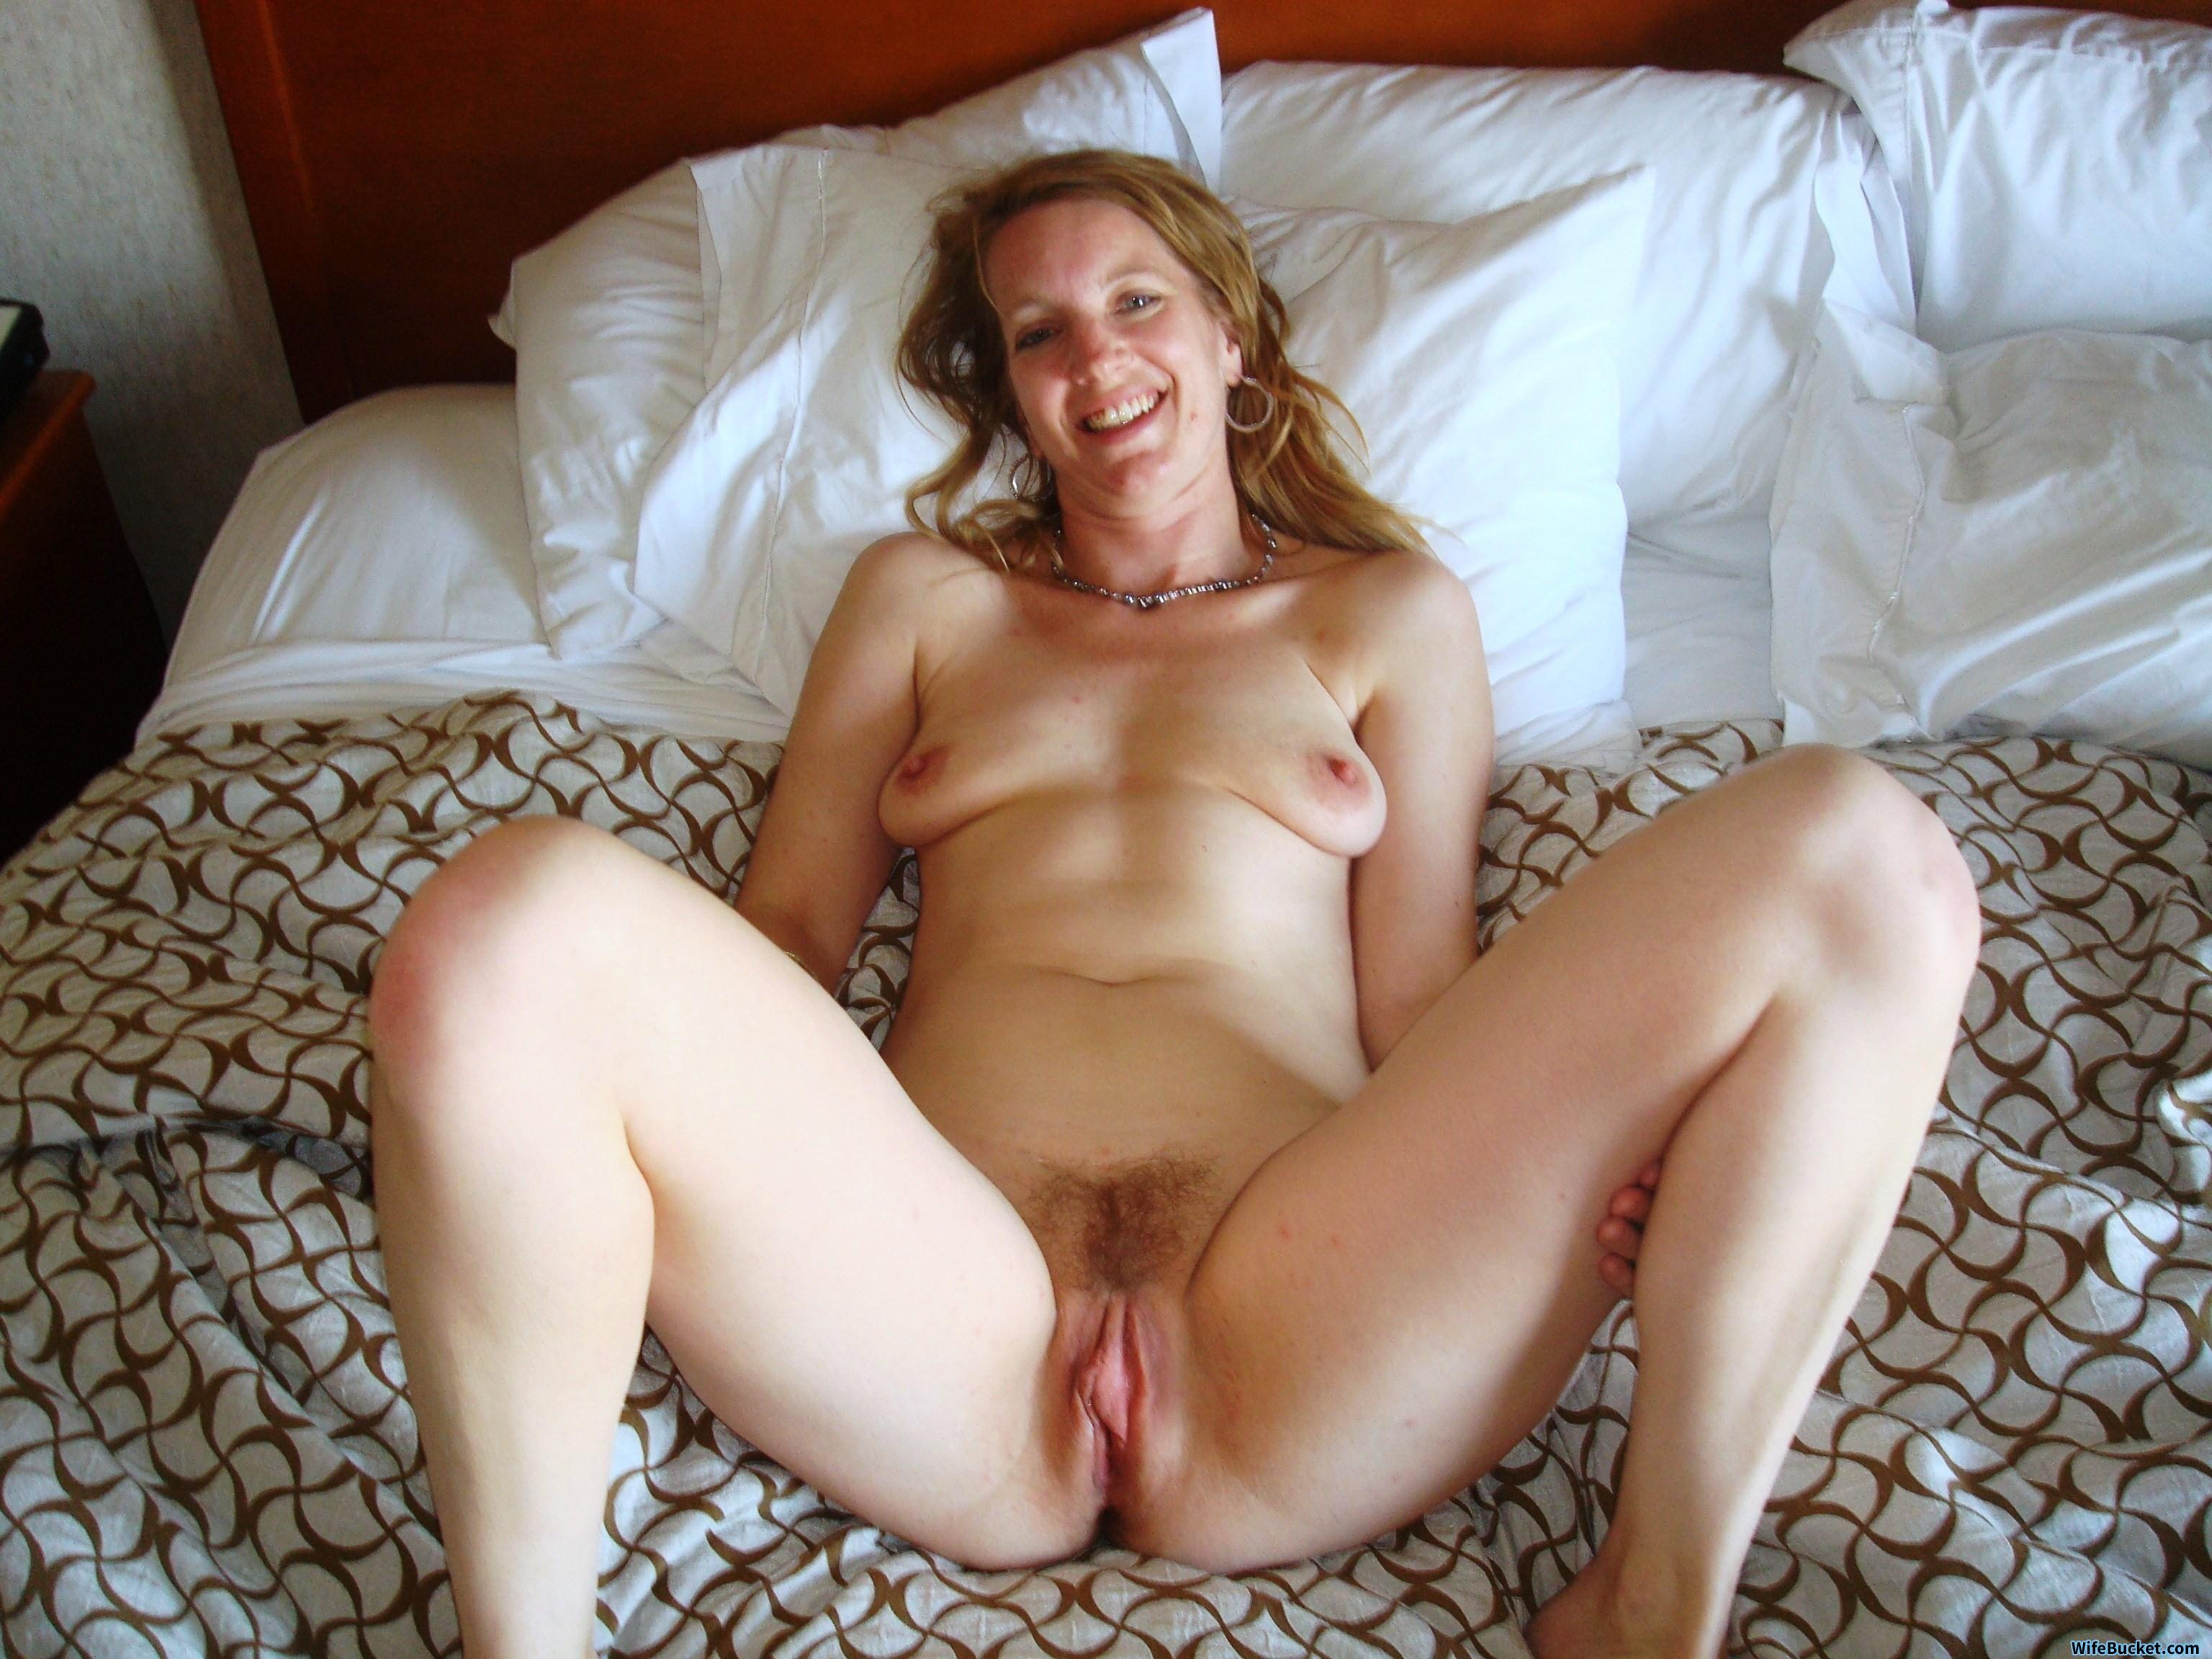 Can recommend boob huge swinger wife think